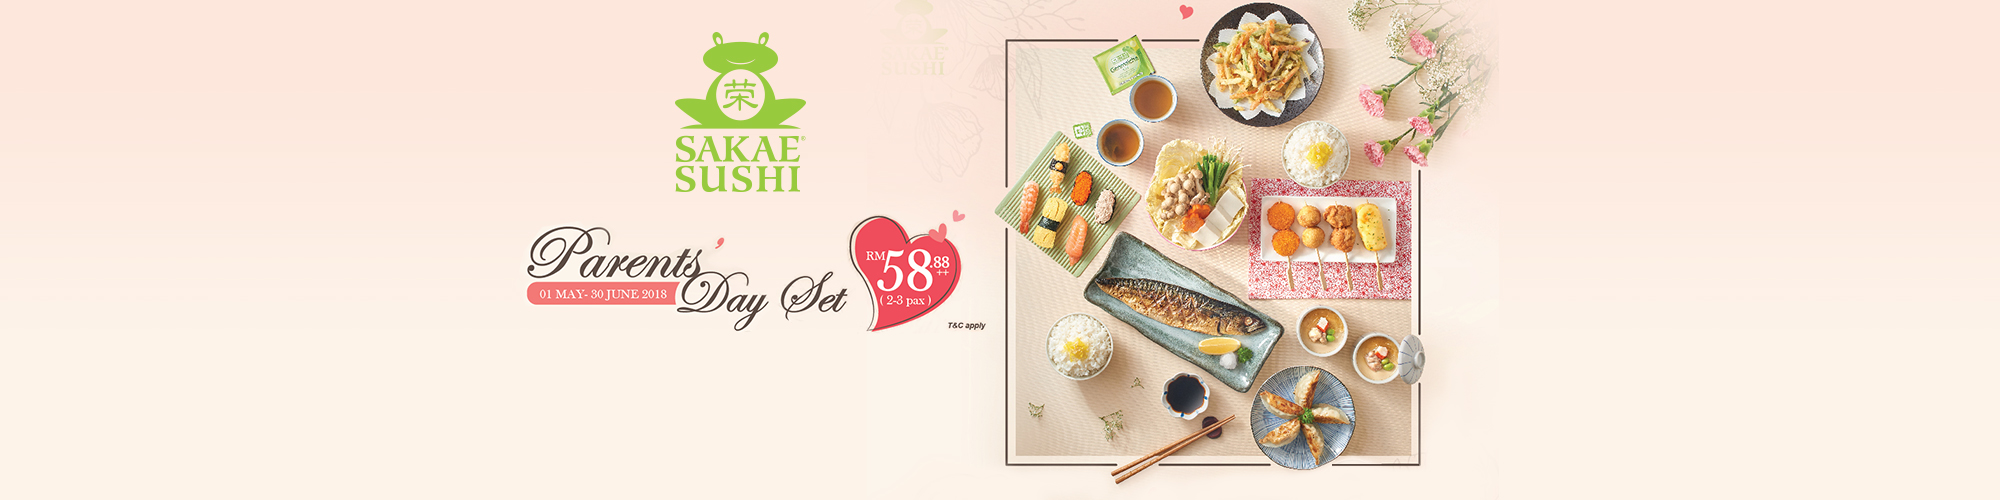 km_website_slider_sakaesushi_parentsday